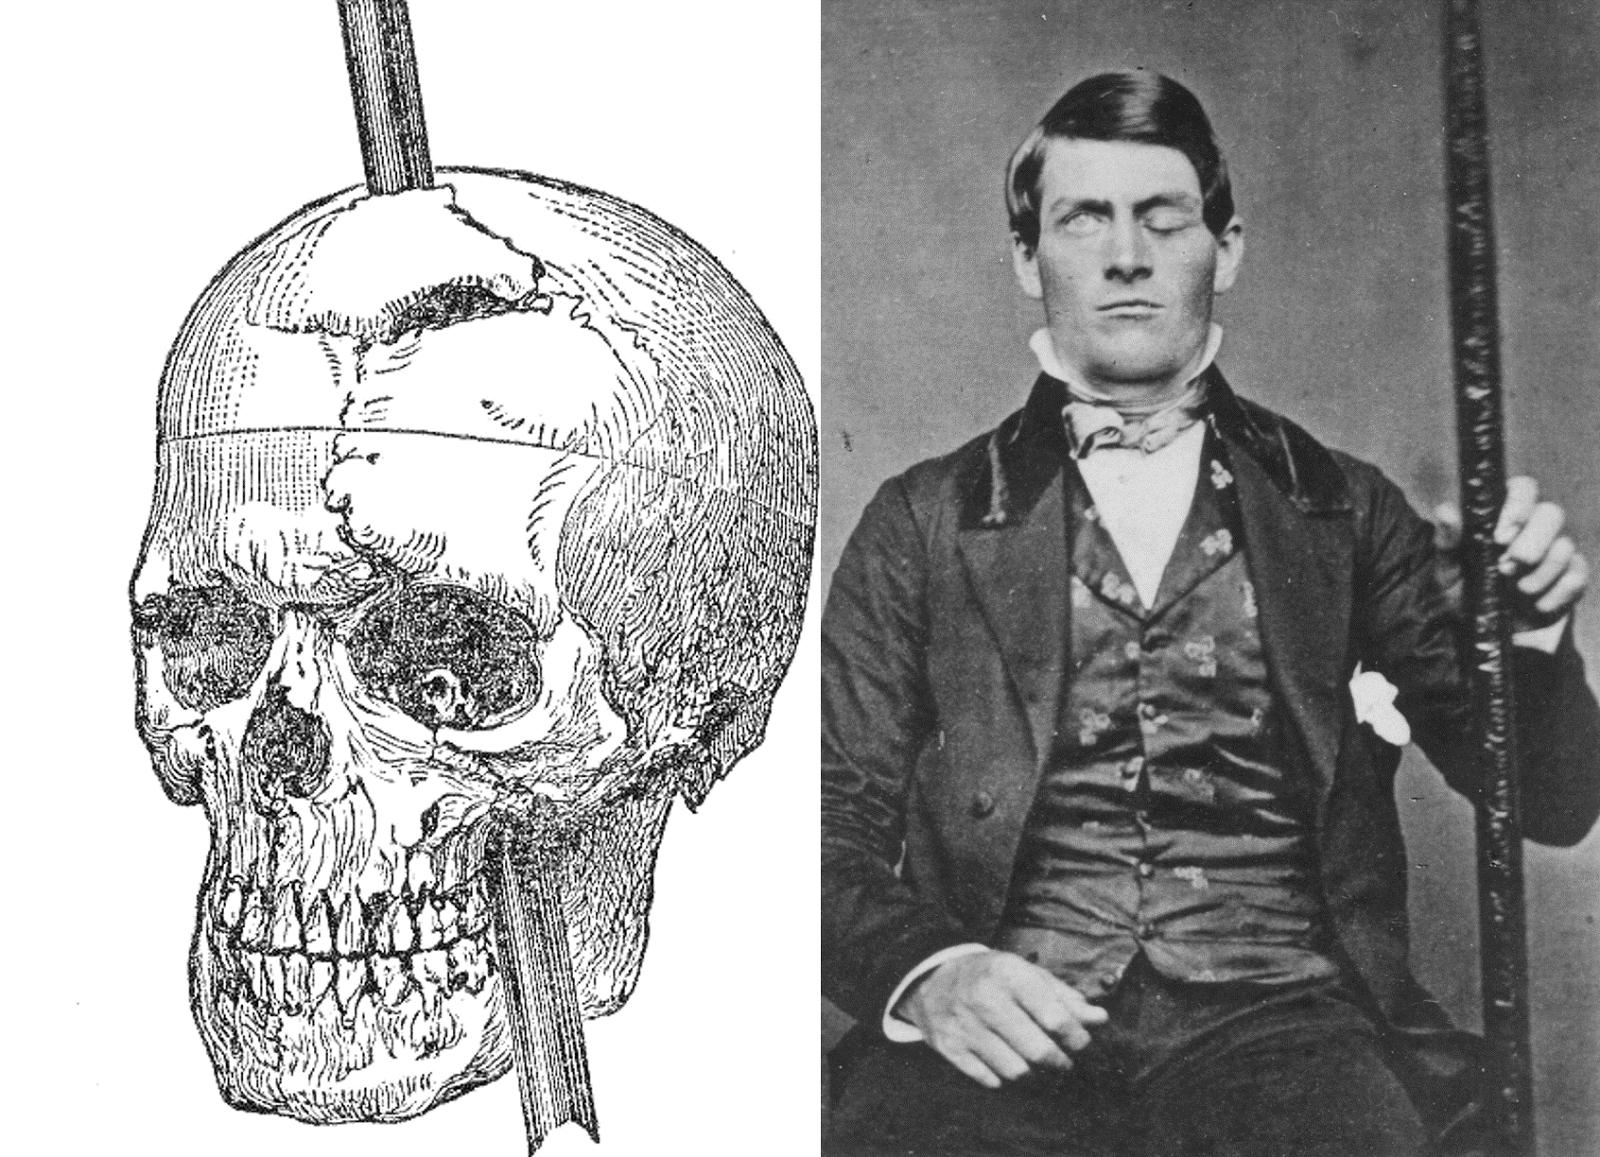 Phineas Gage Was A Railway Worker Whose Life Changed